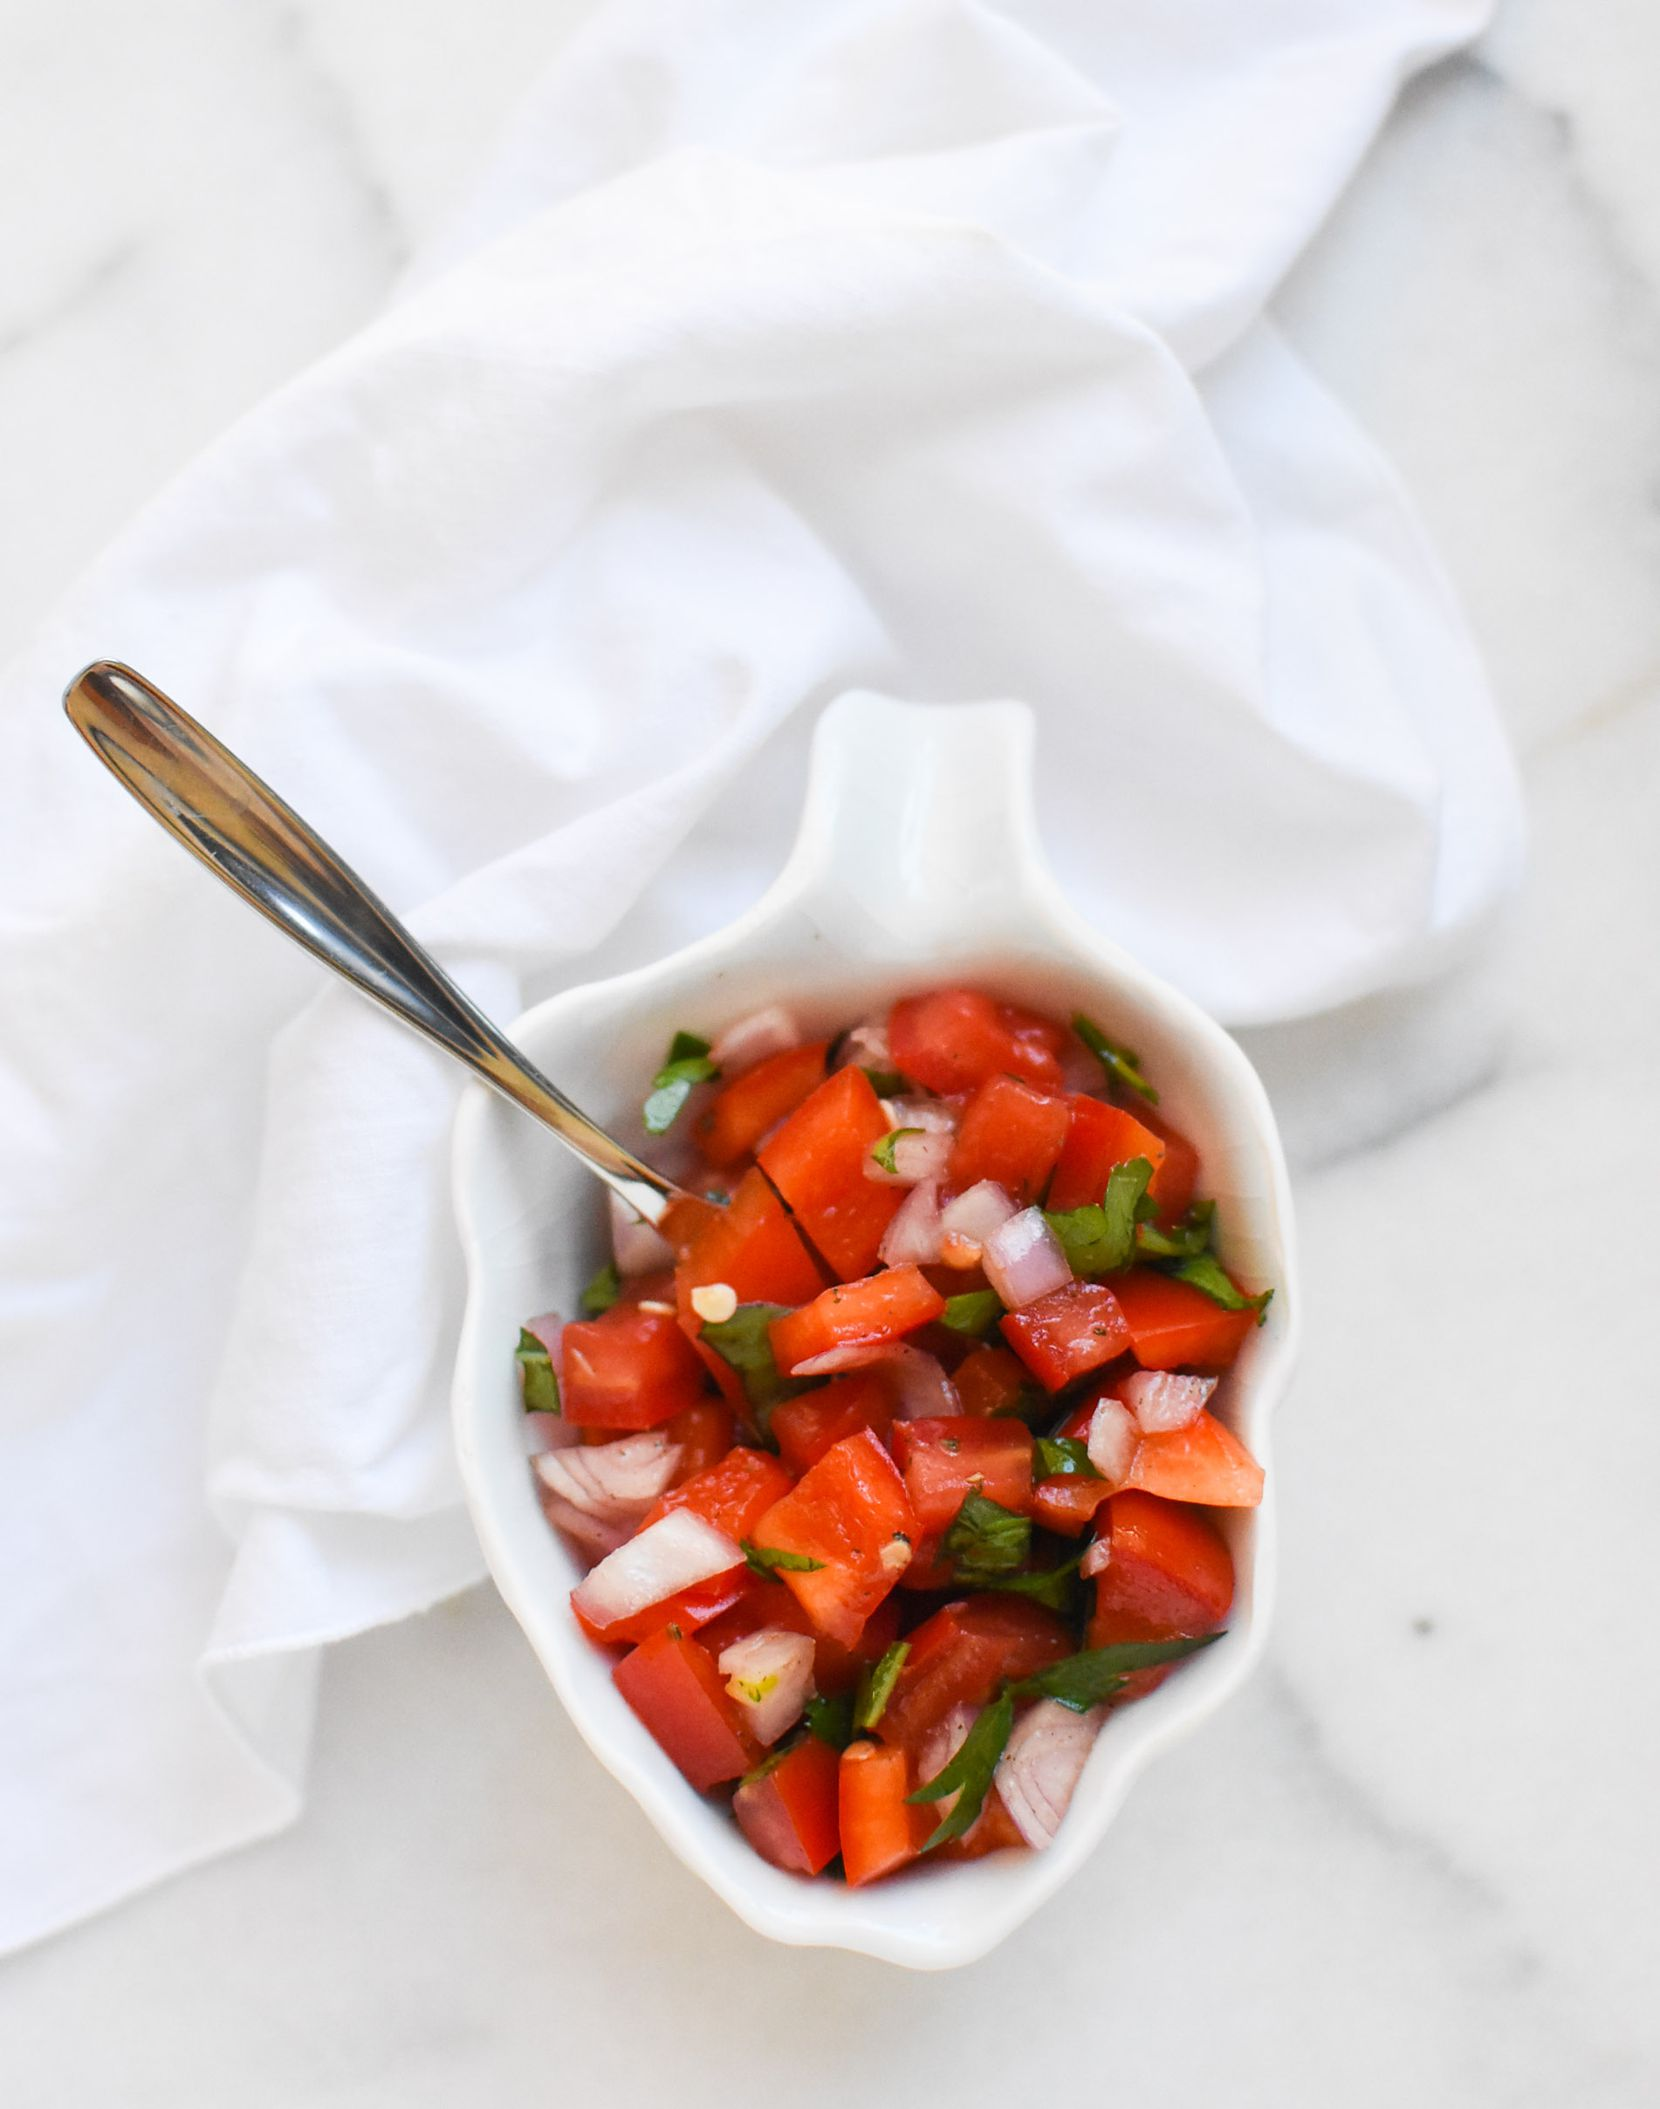 Tomato and Red Bell Pepper Salad